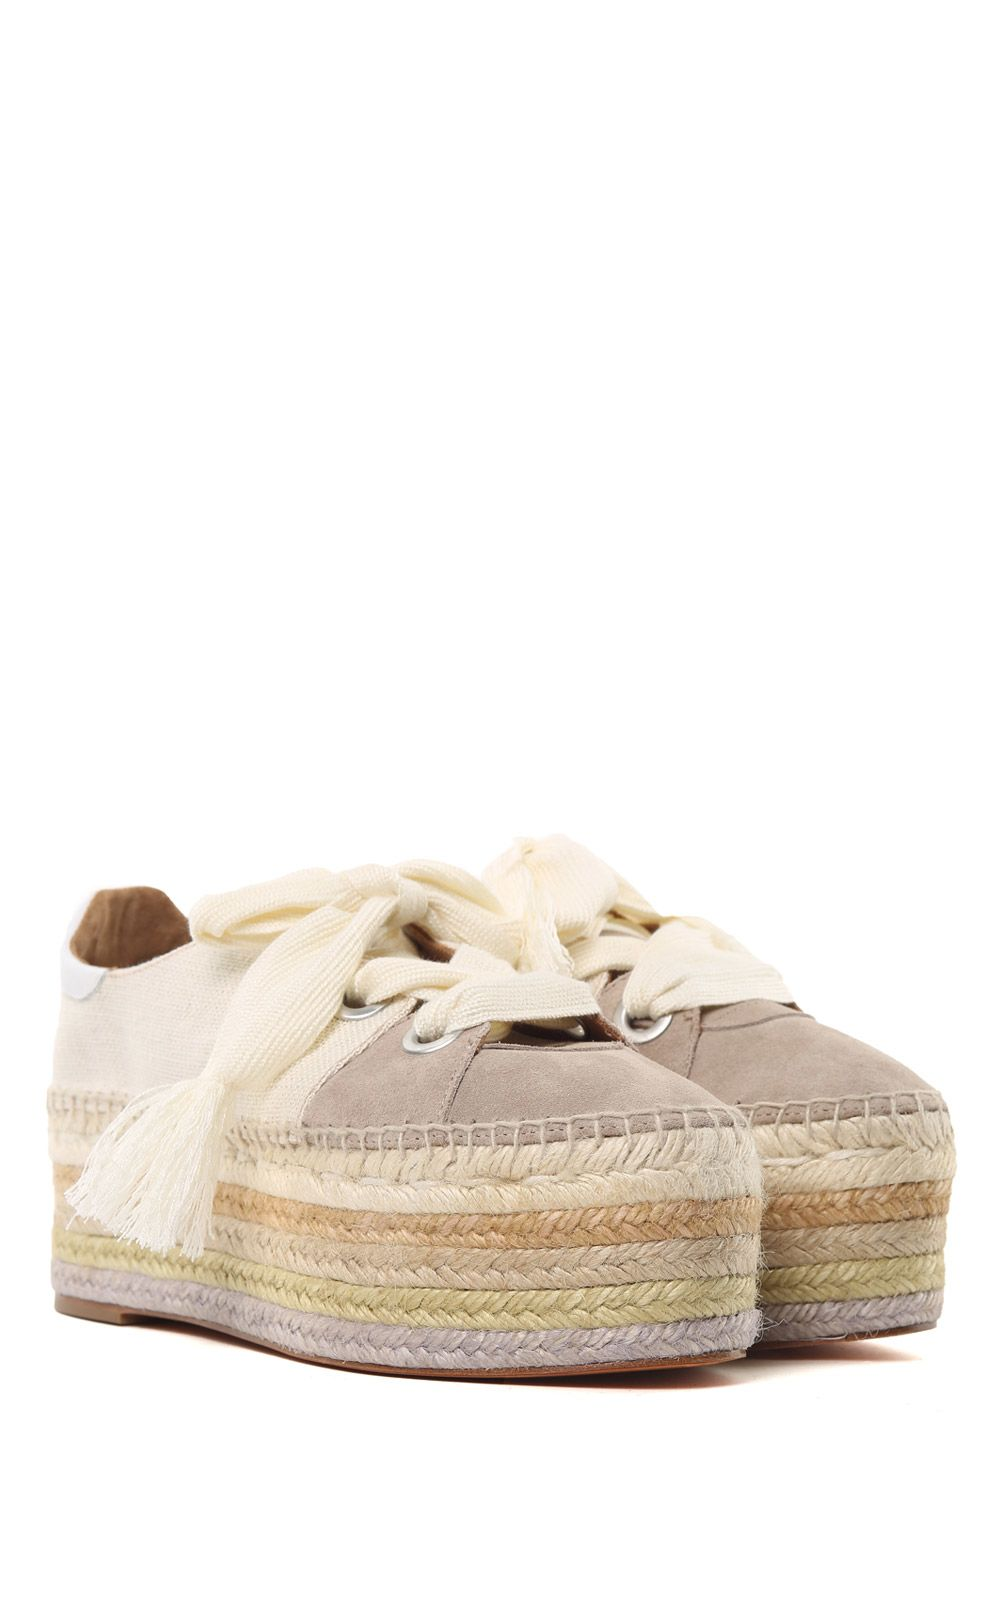 38043db1cb3 ... See by Chloé Qai Suede And Canvas Platform Espadrille Sneakers - Beige  ...